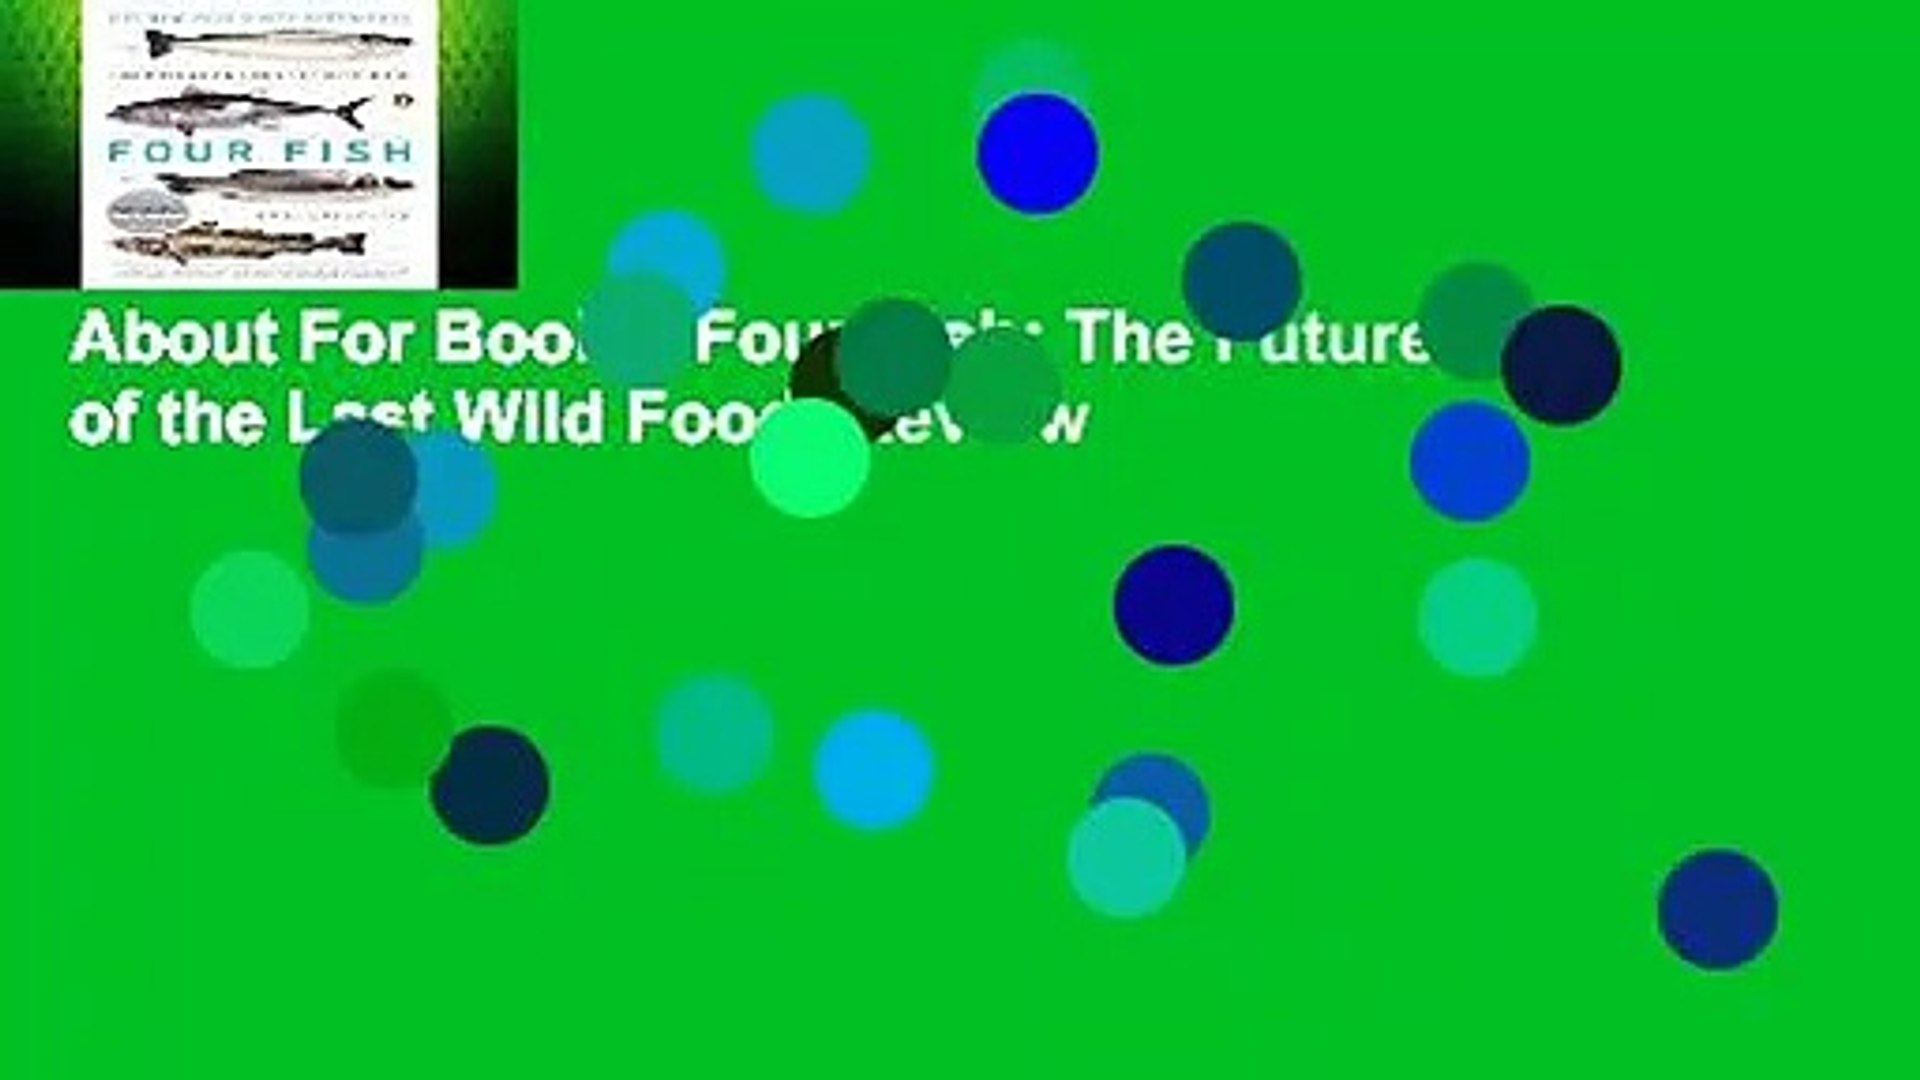 About For Books  Four Fish: The Future of the Last Wild Food  Review